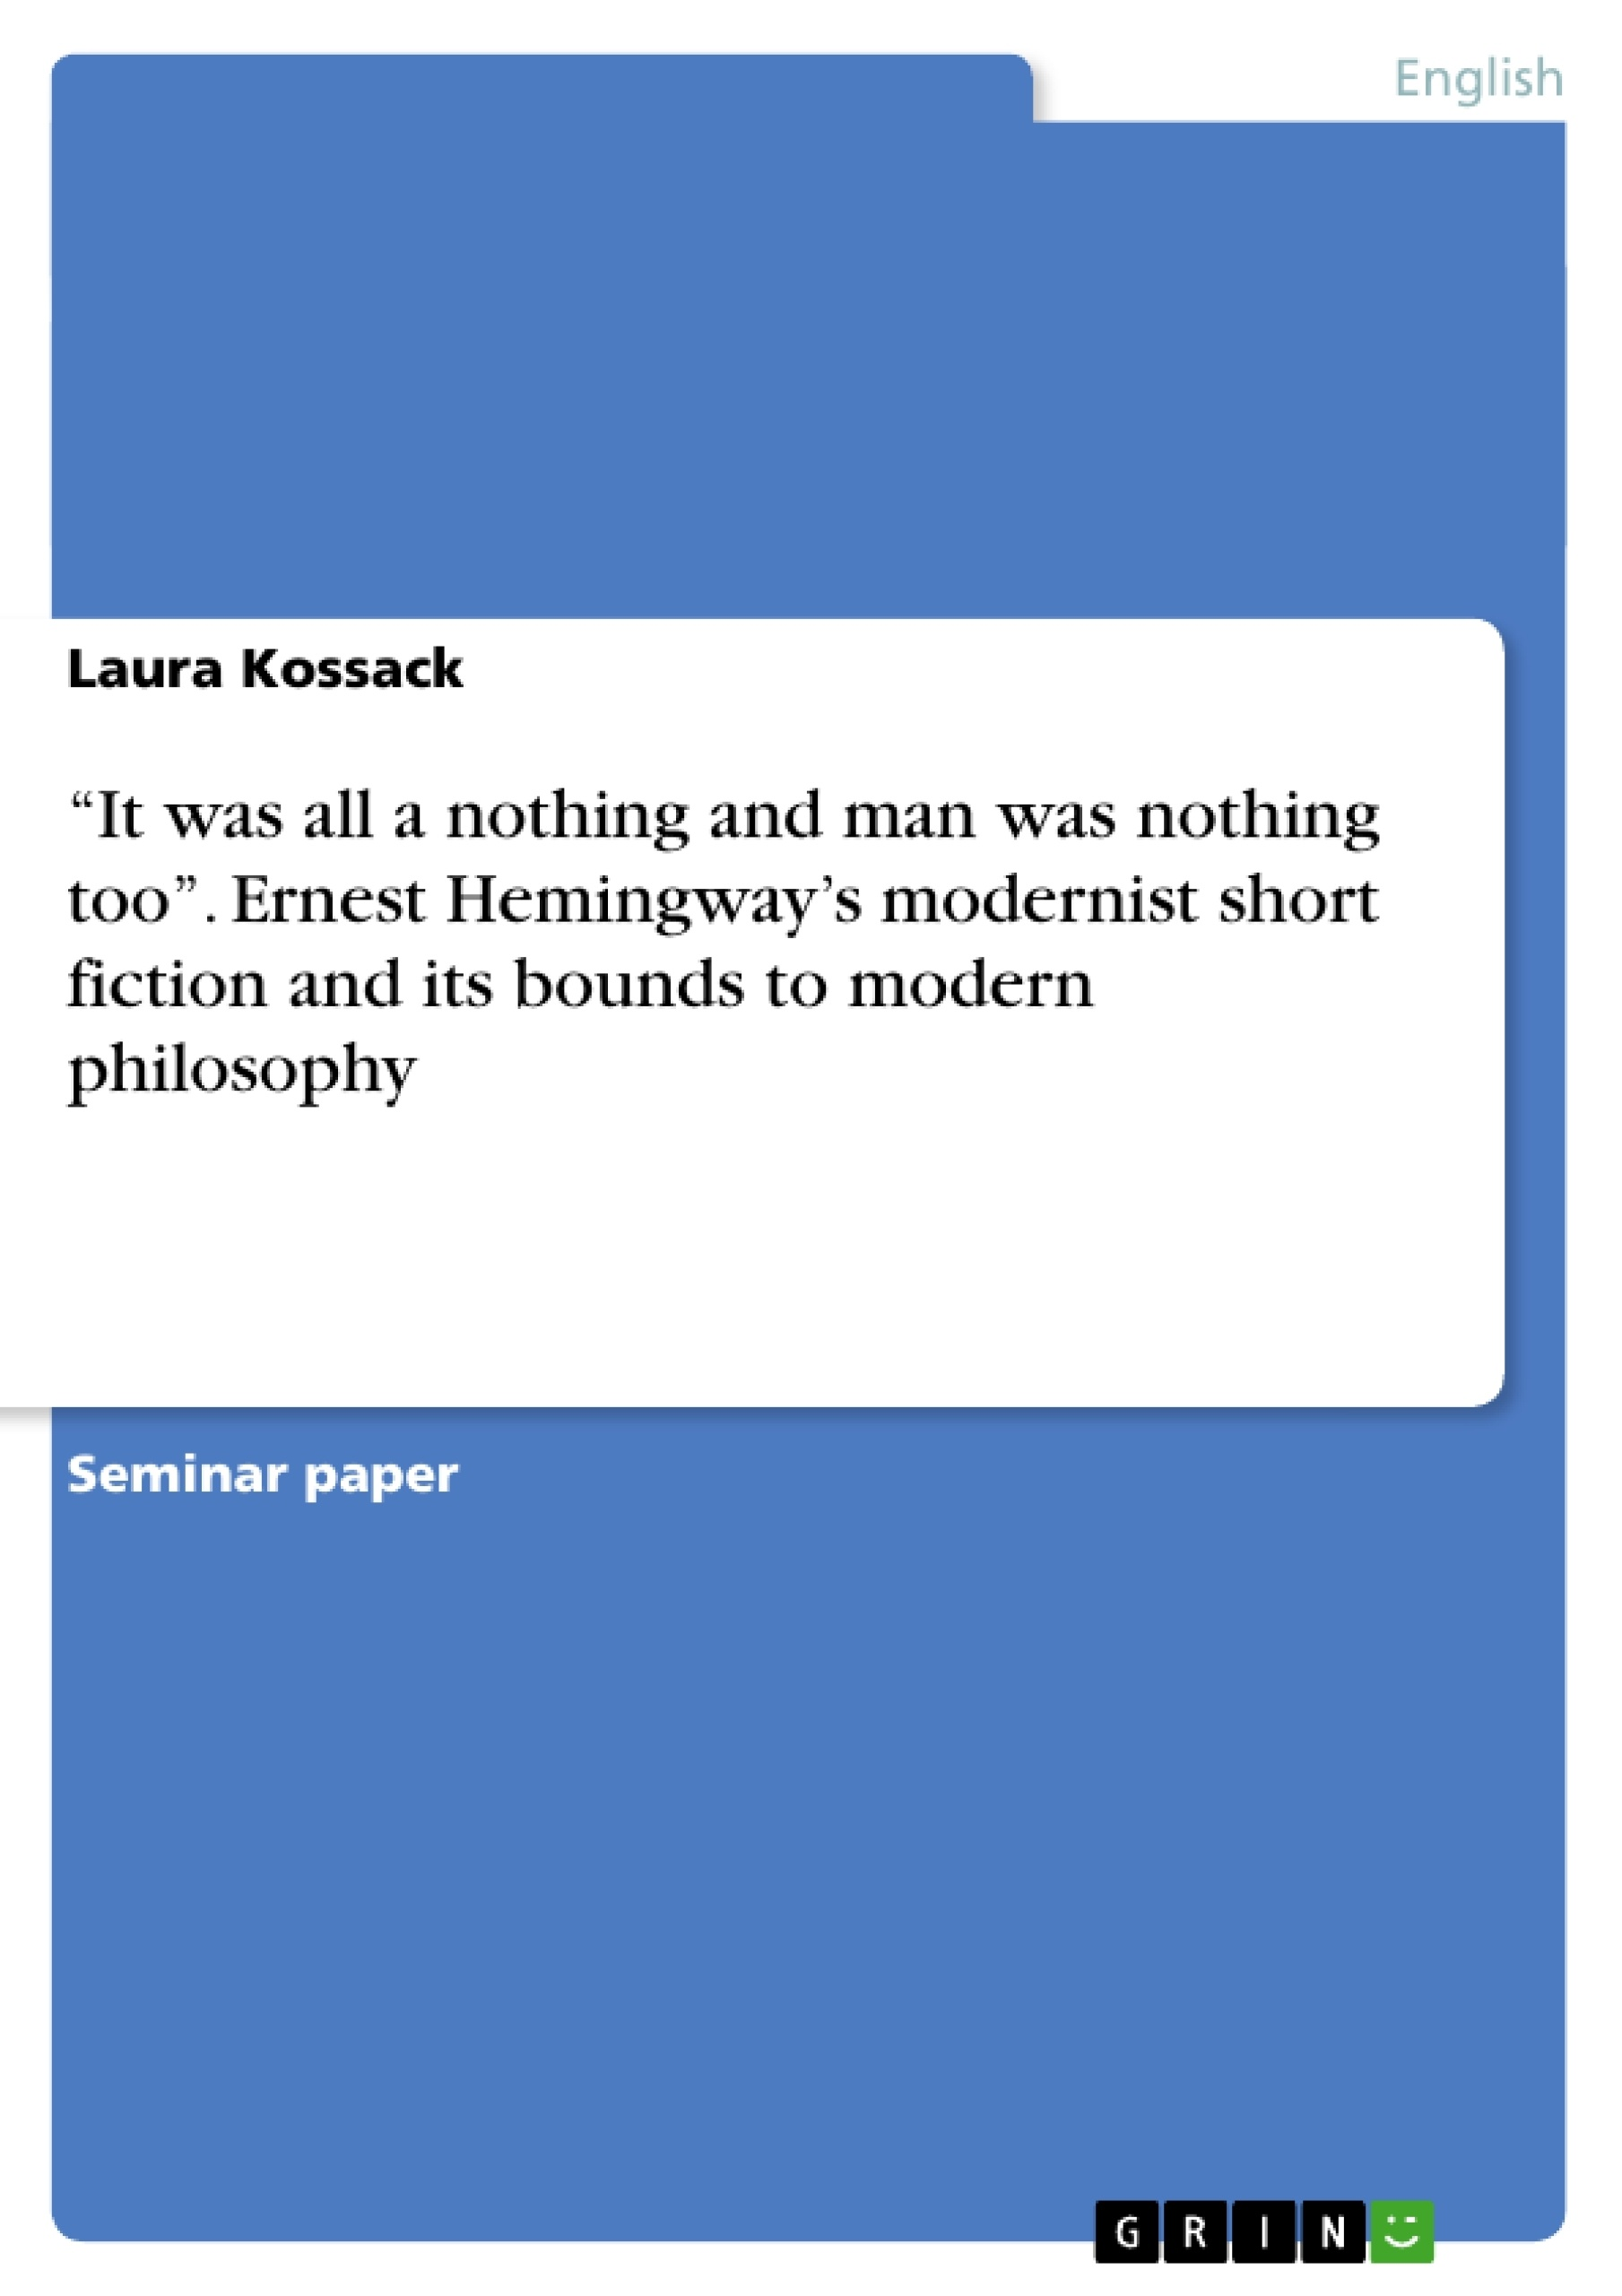 """Title: """"It was all a nothing and man was nothing too"""". Ernest Hemingway's modernist short fiction and its bounds to modern philosophy"""